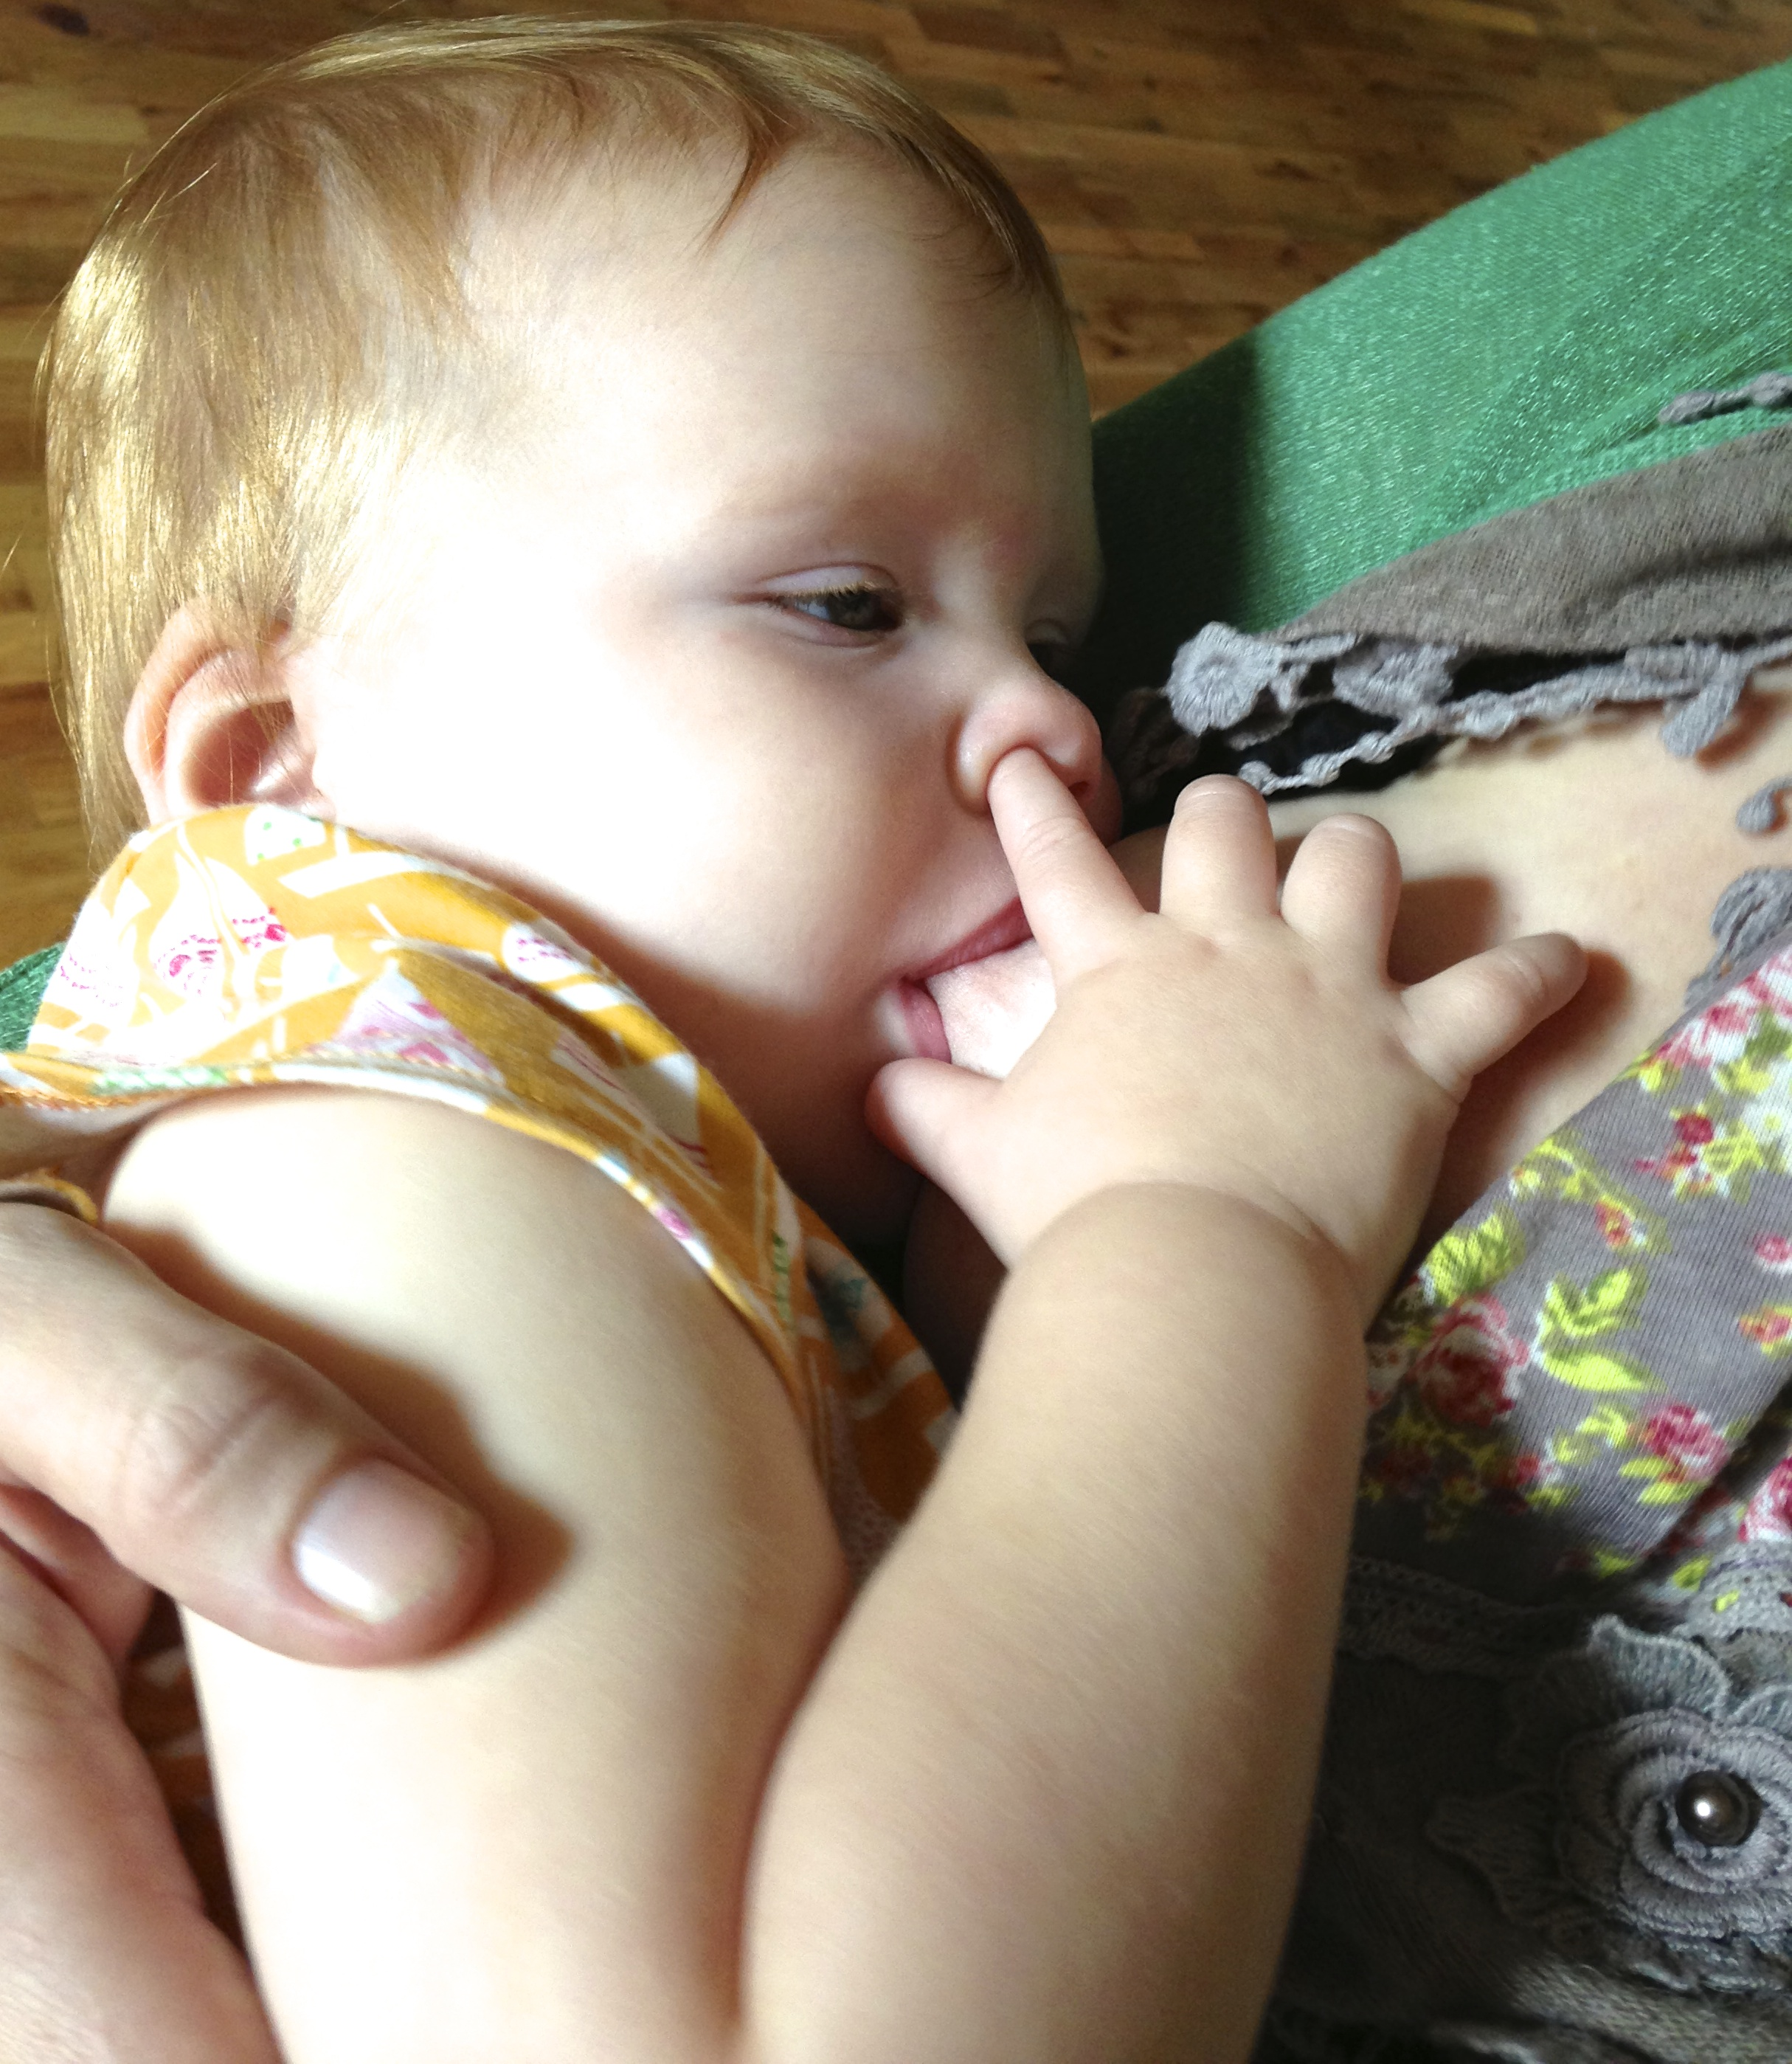 Toddlers are expert multitaskers at the breast.